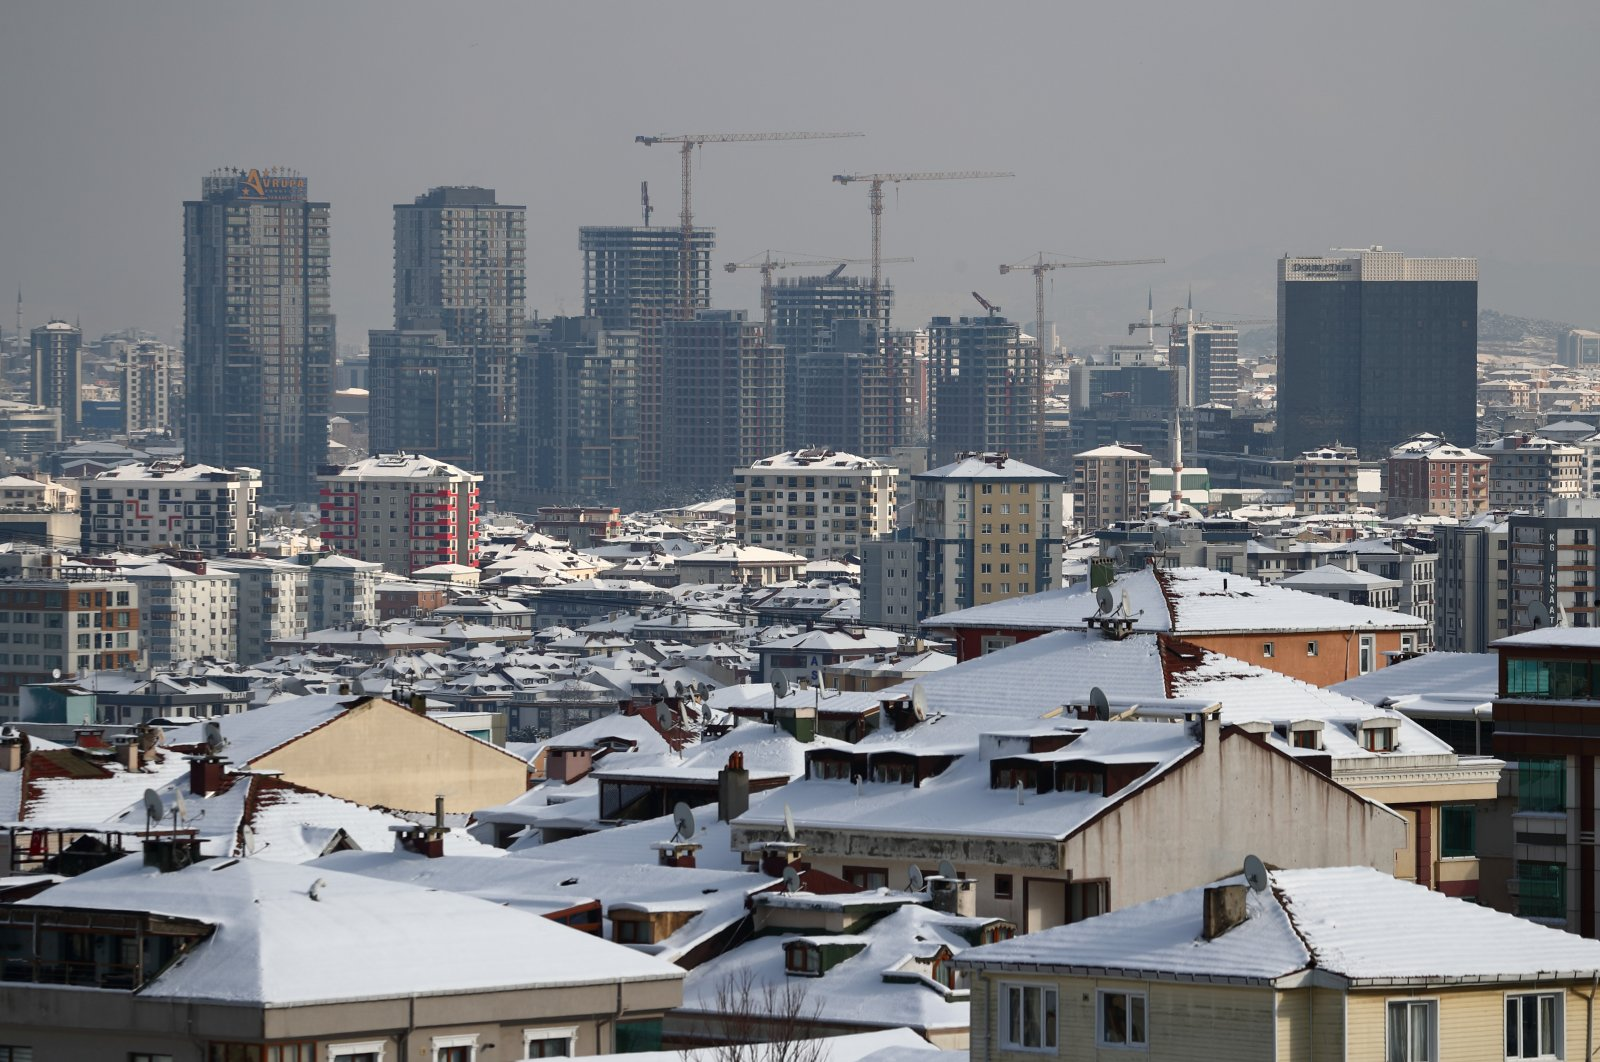 New residential buildings under construction in the Ümraniye district in Istanbul, Turkey, Jan. 18, 2021. (Reuters Photo)